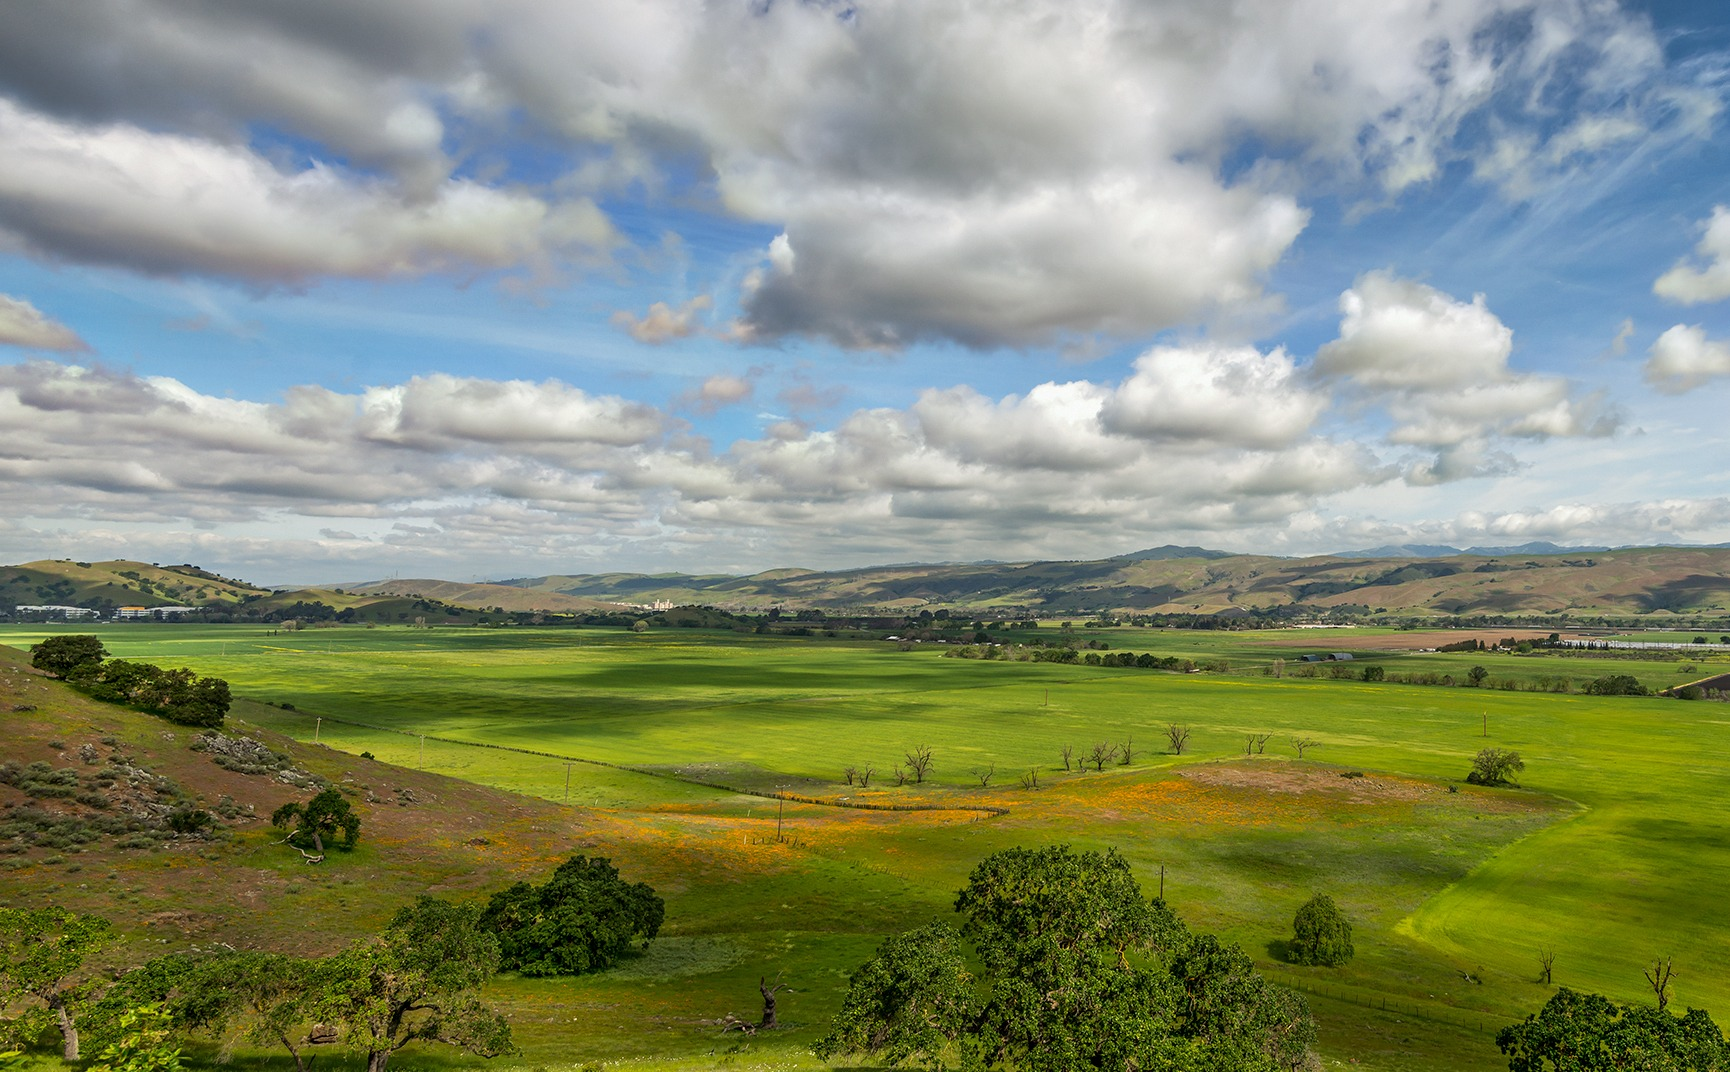 Green Coyote Valley under blue sky with clouds